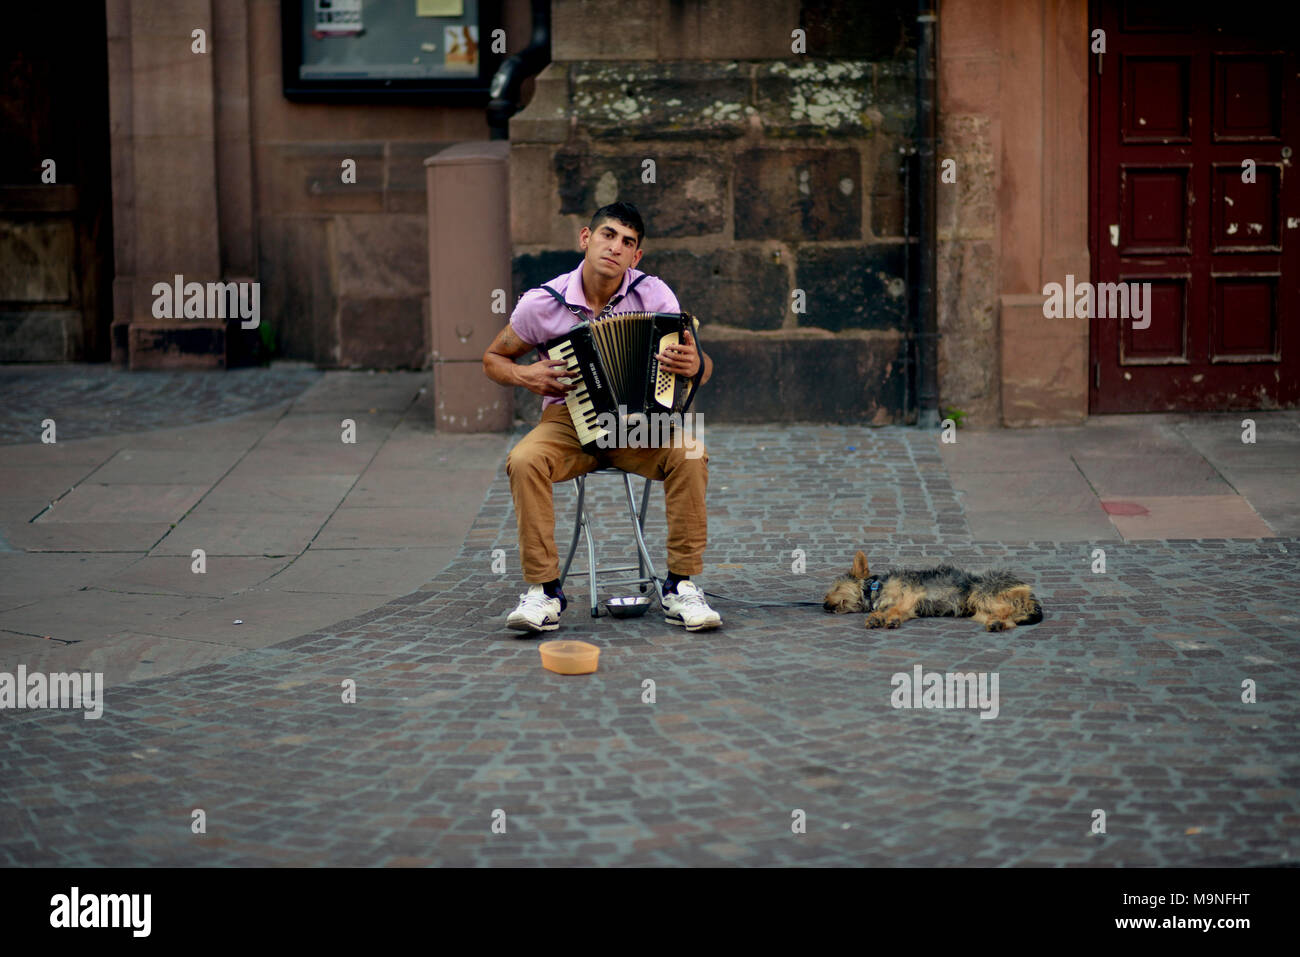 A street musician plays his accordion in Heidelberg, Germany while letting his sleeping dog lie. - Stock Image